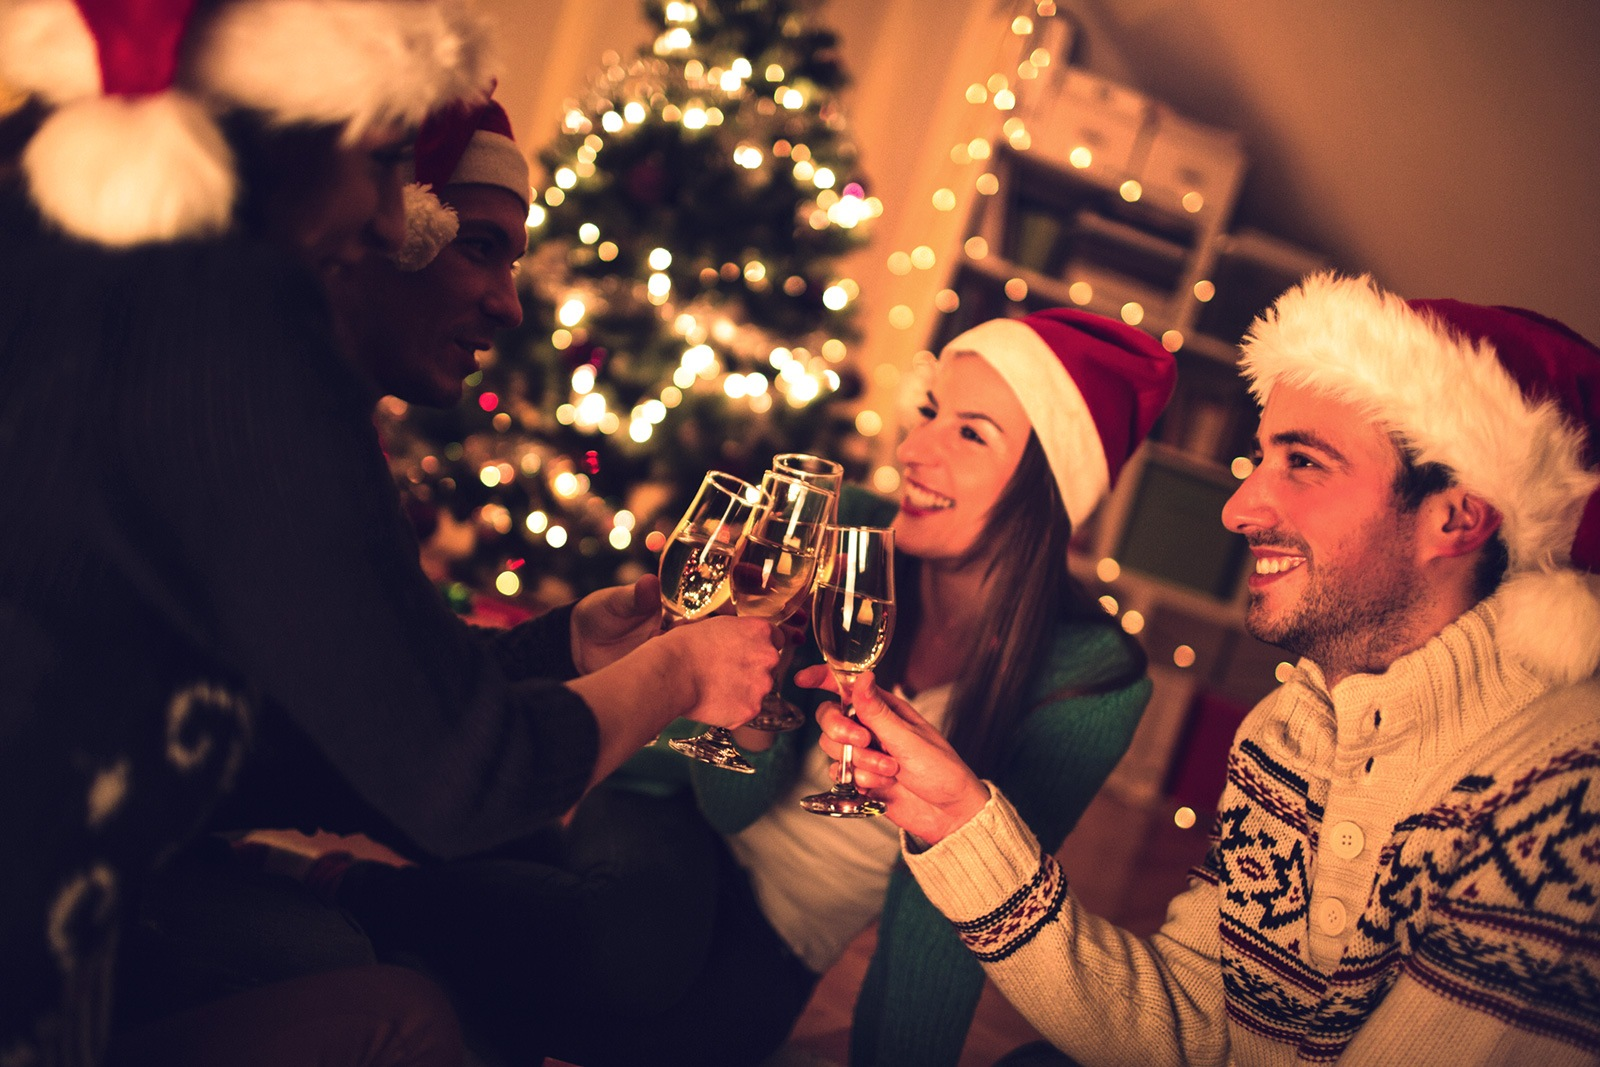 What Are Best Christmas Party Ideas For Kids That Everyone Will Like